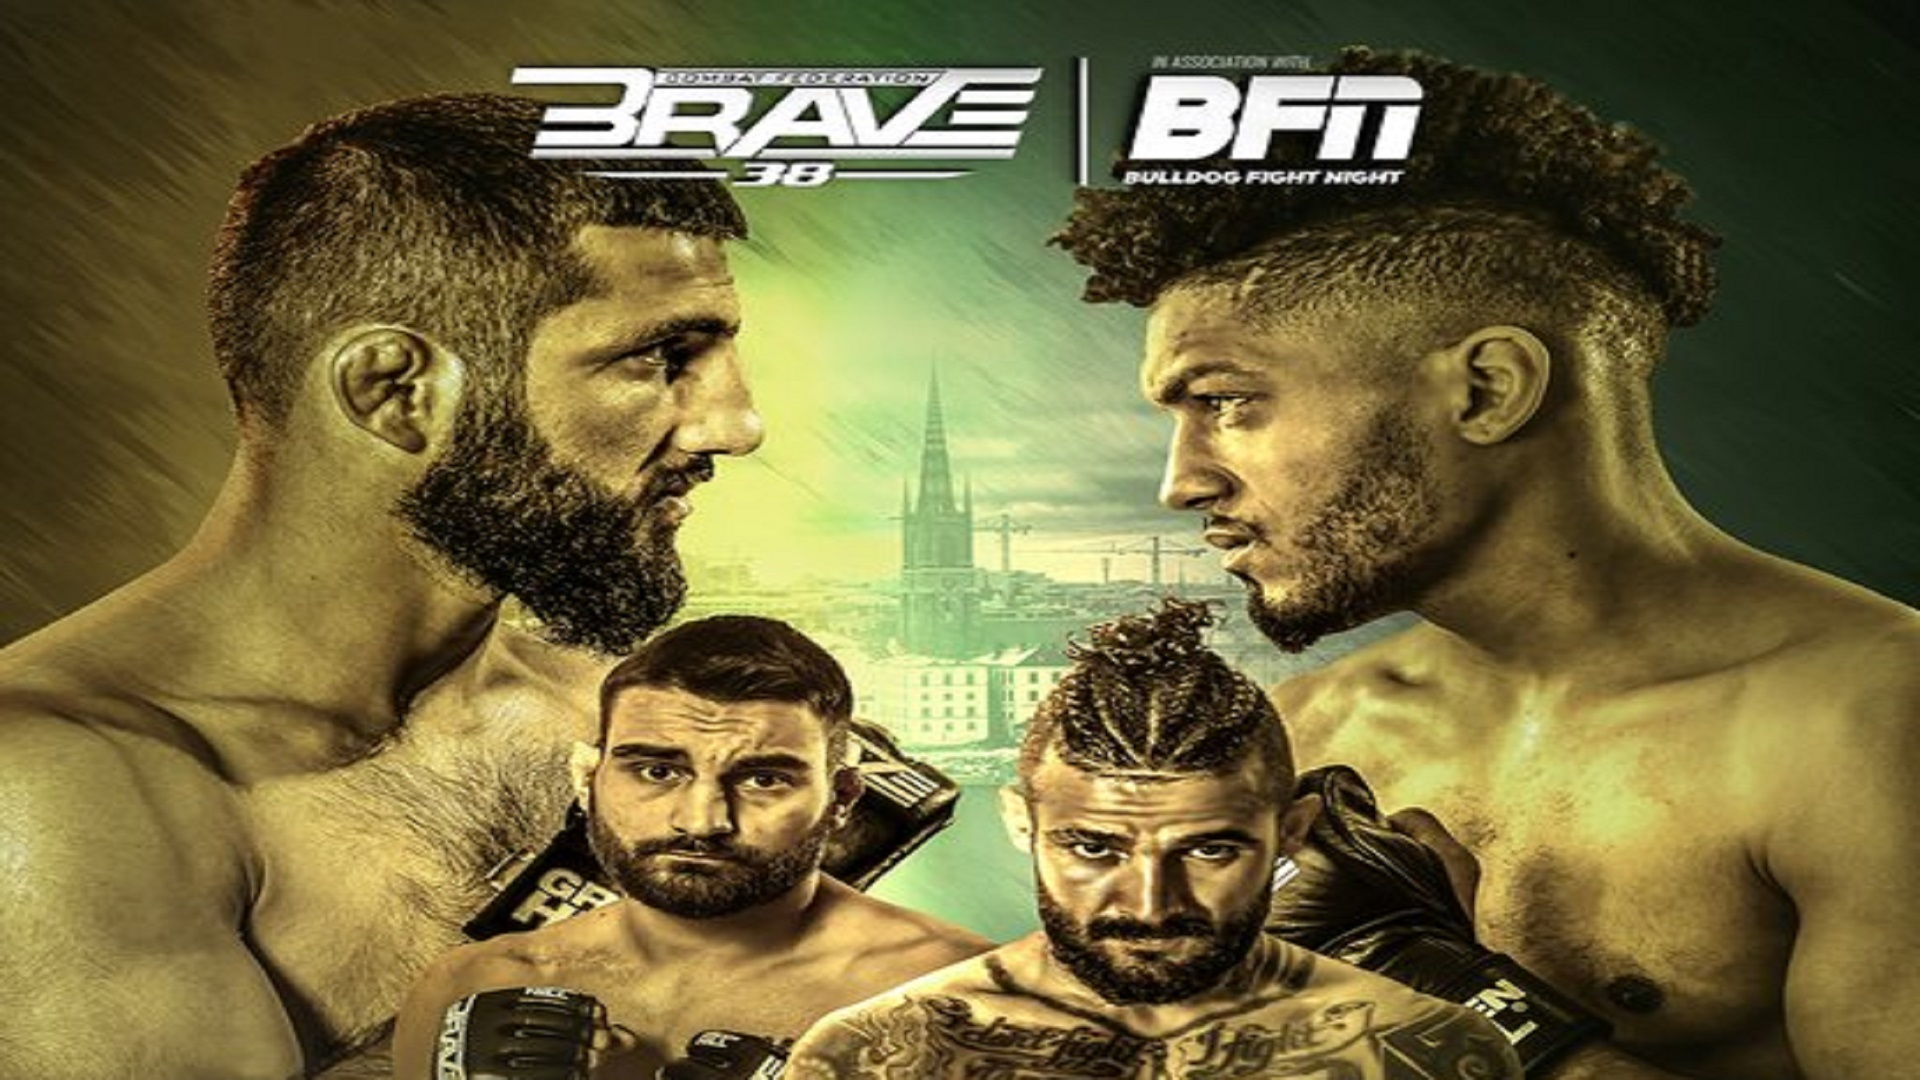 BRAVE-CF-38-Full-Fight-Card